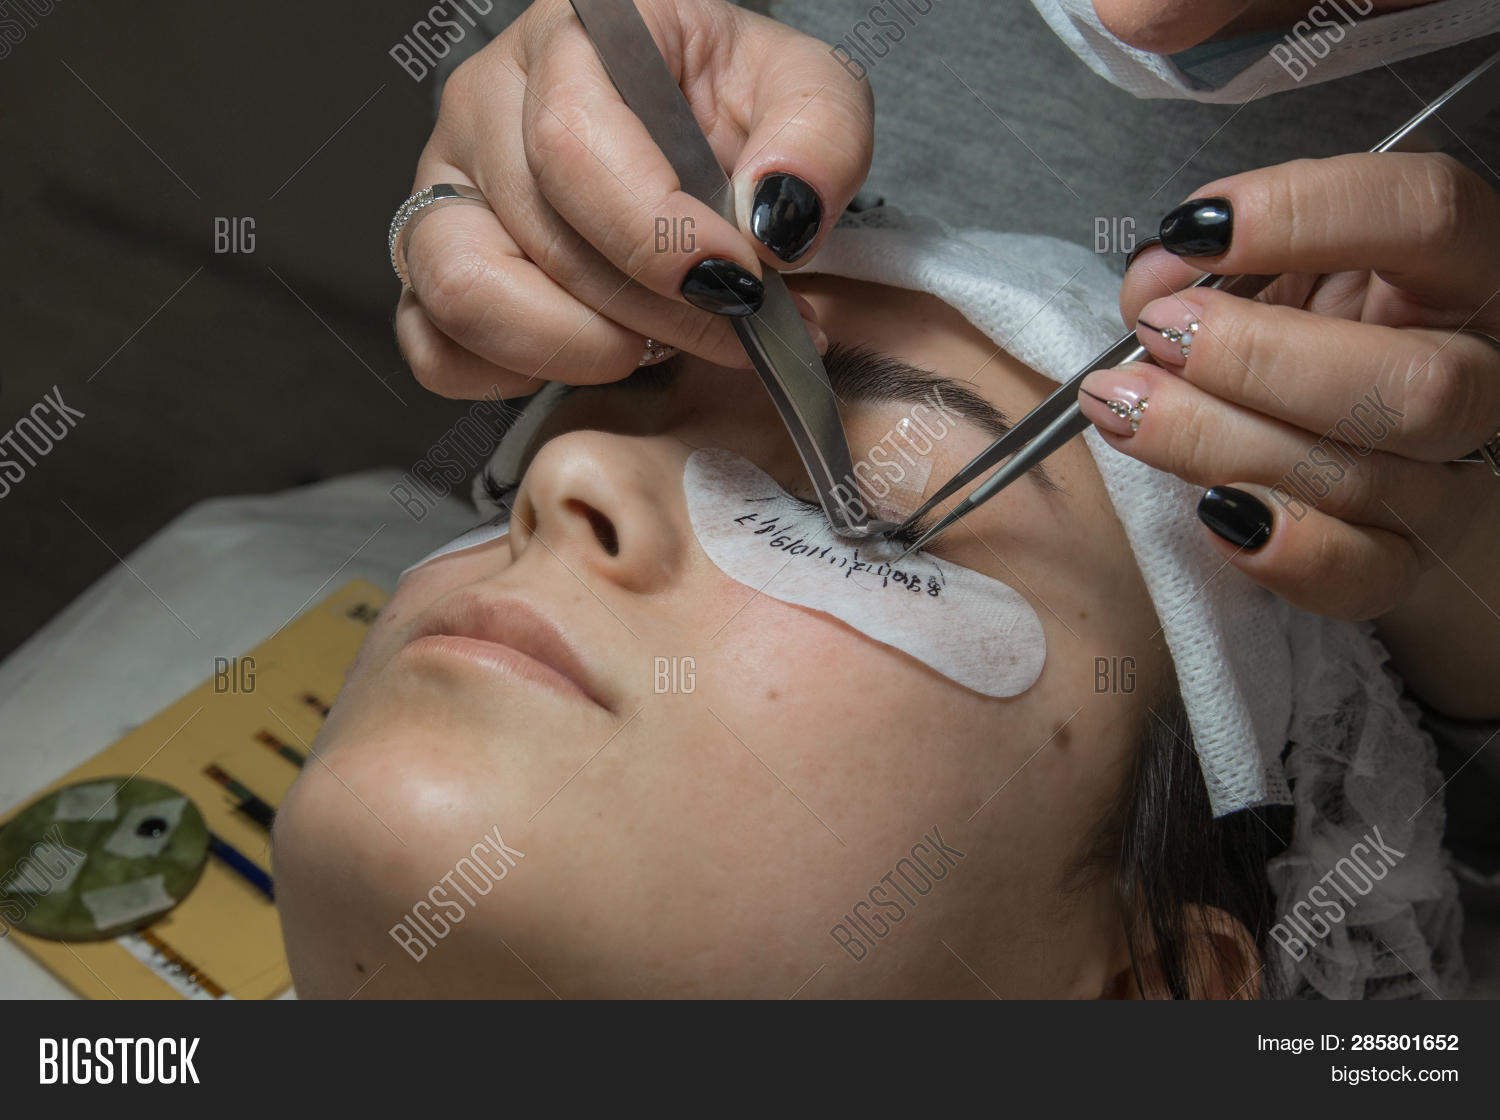 addition,apply,artificial,beautification,beautiful,beauty,care,clean,clear,client,clinic,close,closed,complexion,correction,cosmetic,create,design,escalating,european,extension,eye,eyebrow,eyelash,face,facial,fake,false,female,glue,increase,lash,long,look,model,numbers,patience,procedure,process,rising,salon,stylist,treatment,tweezer,volume,whipped,woman,working,young